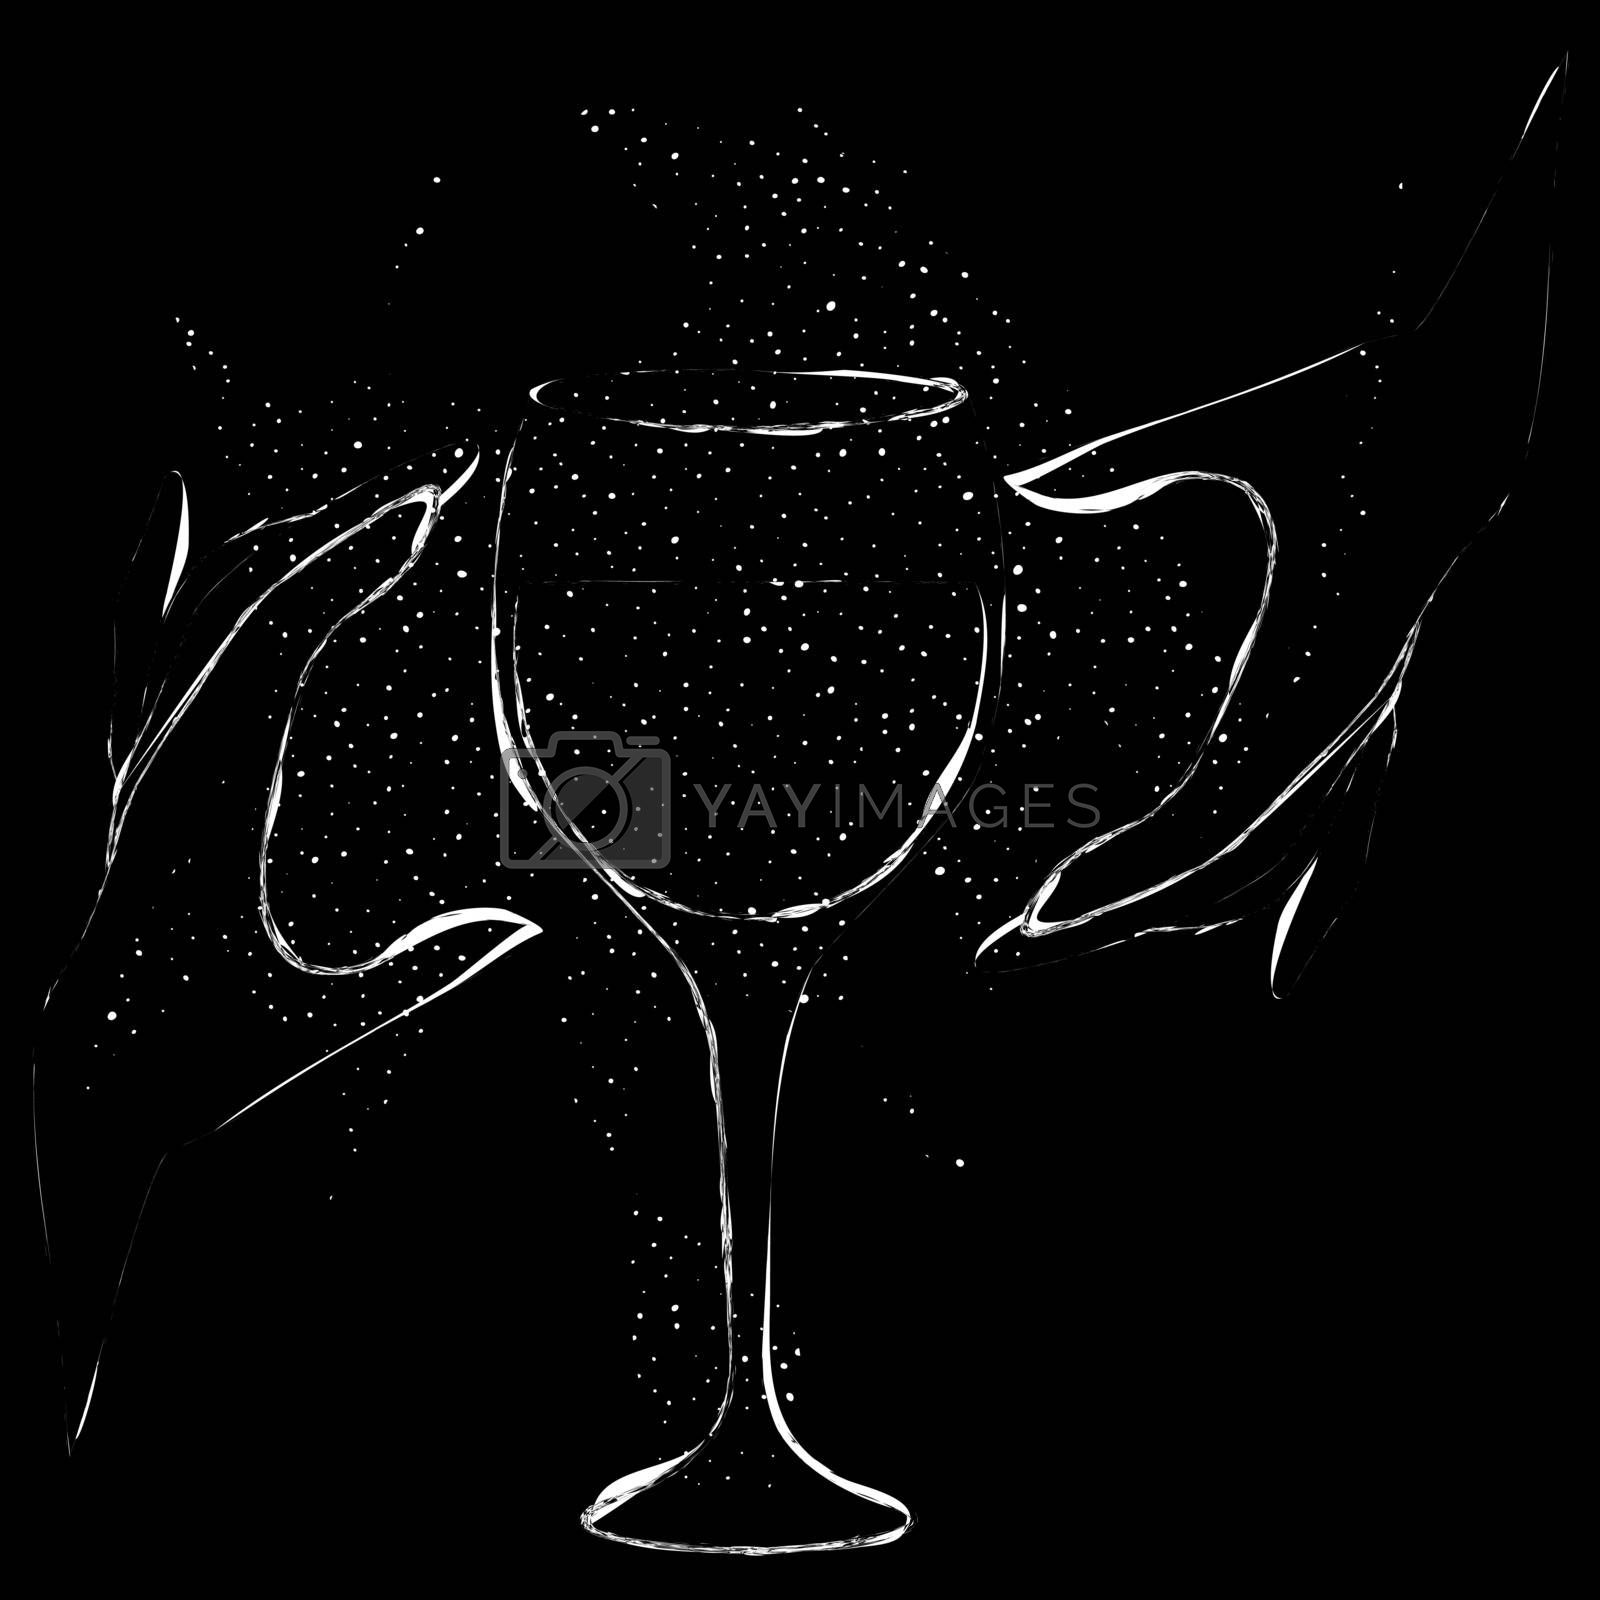 occult grunge illustration with two white contour hands and drinking glass on black backgroud